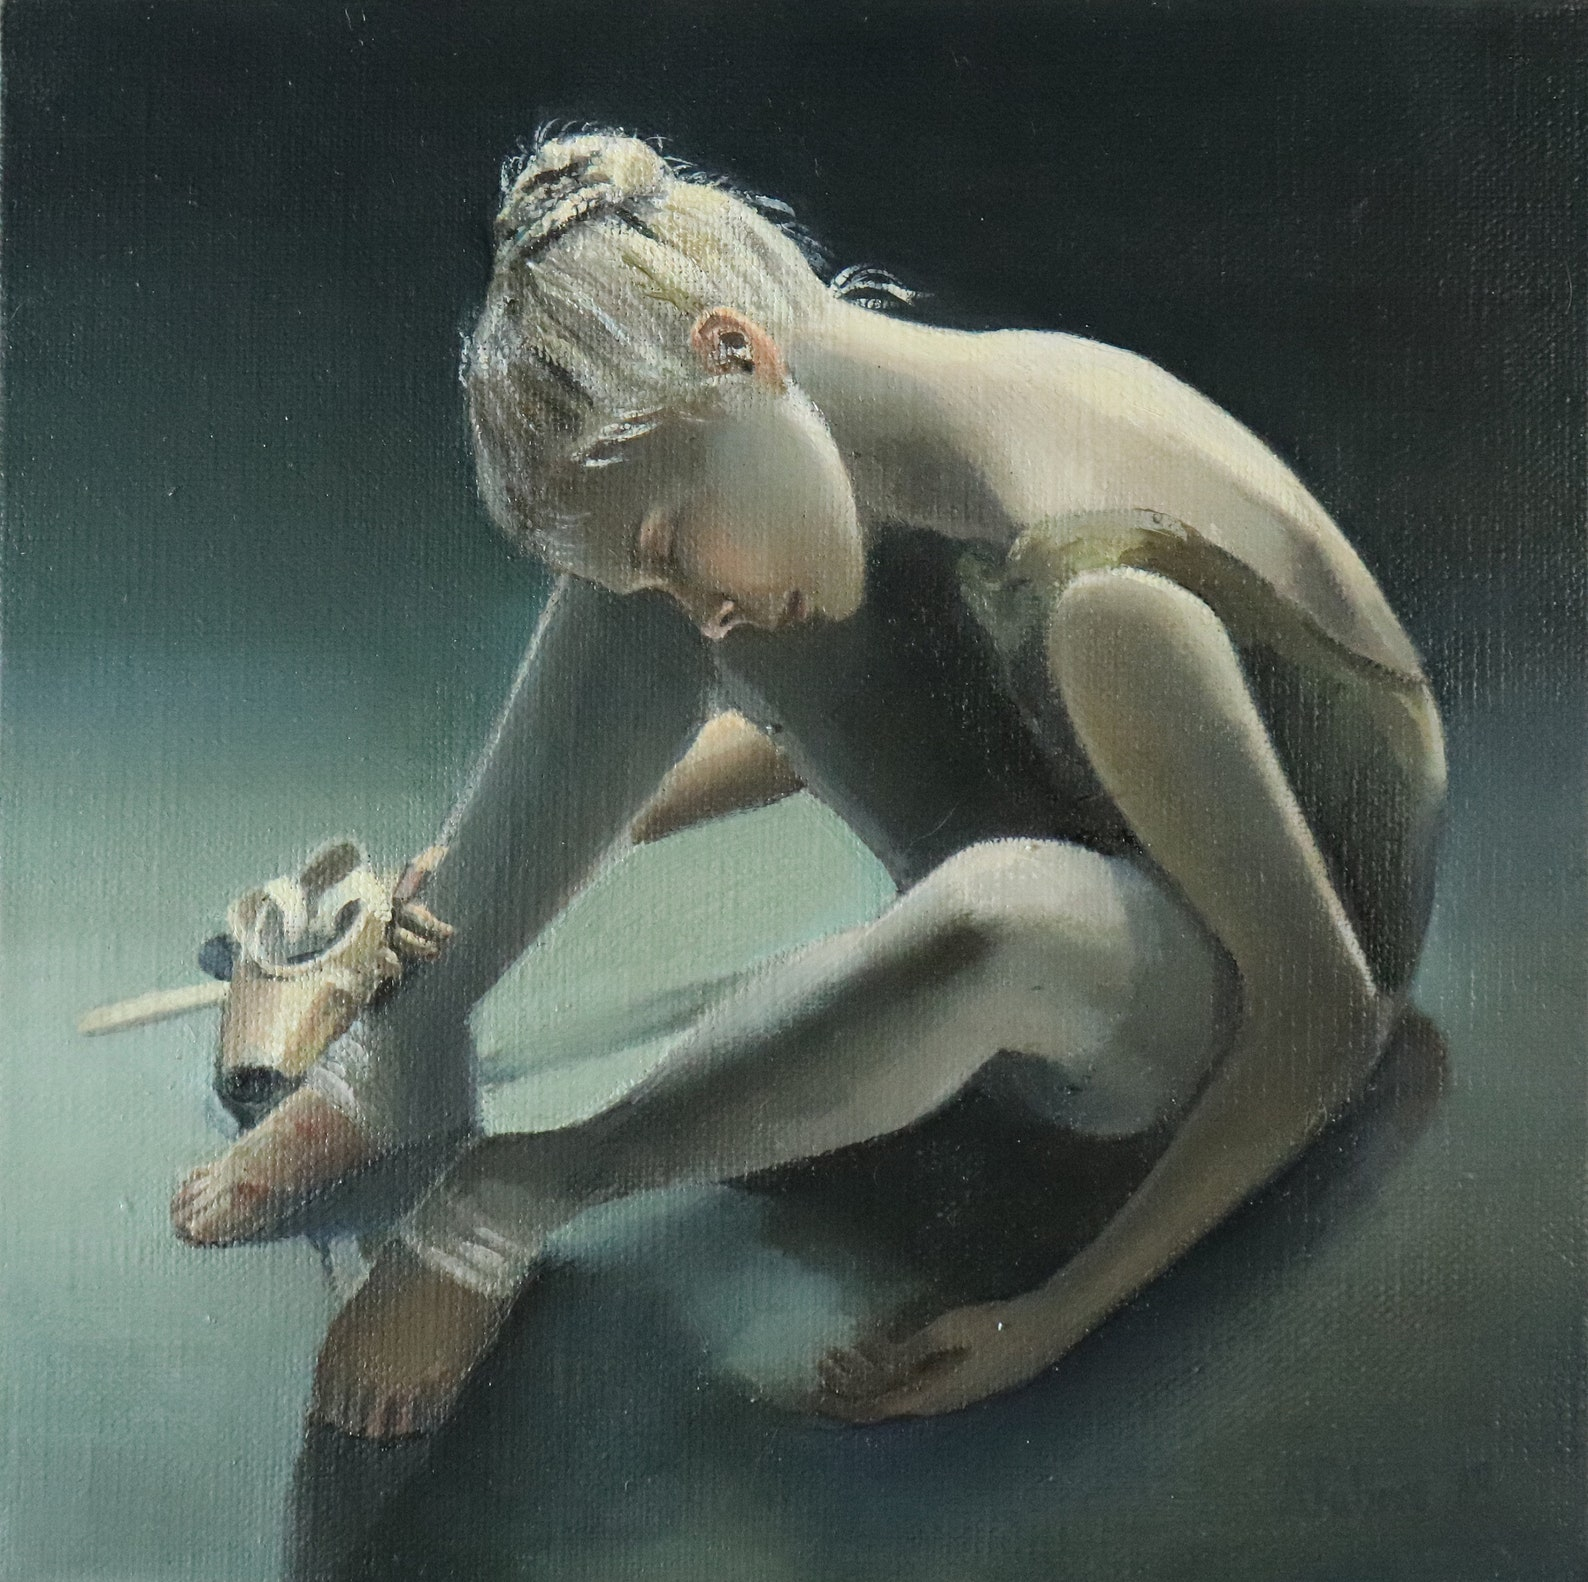 days end, exhausted ballerina, young dancer painting. ballet artwork, not print, original art by alex jabore